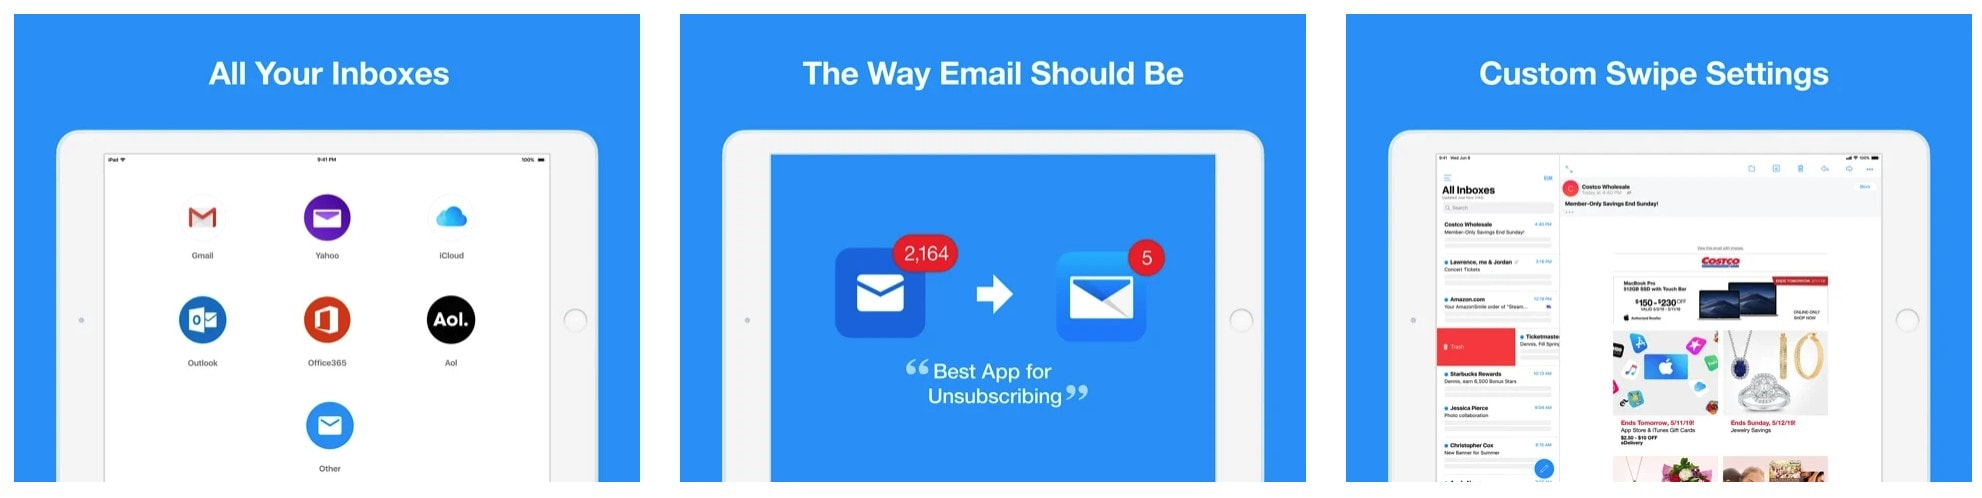 Edison Mail adds iOS email widgets